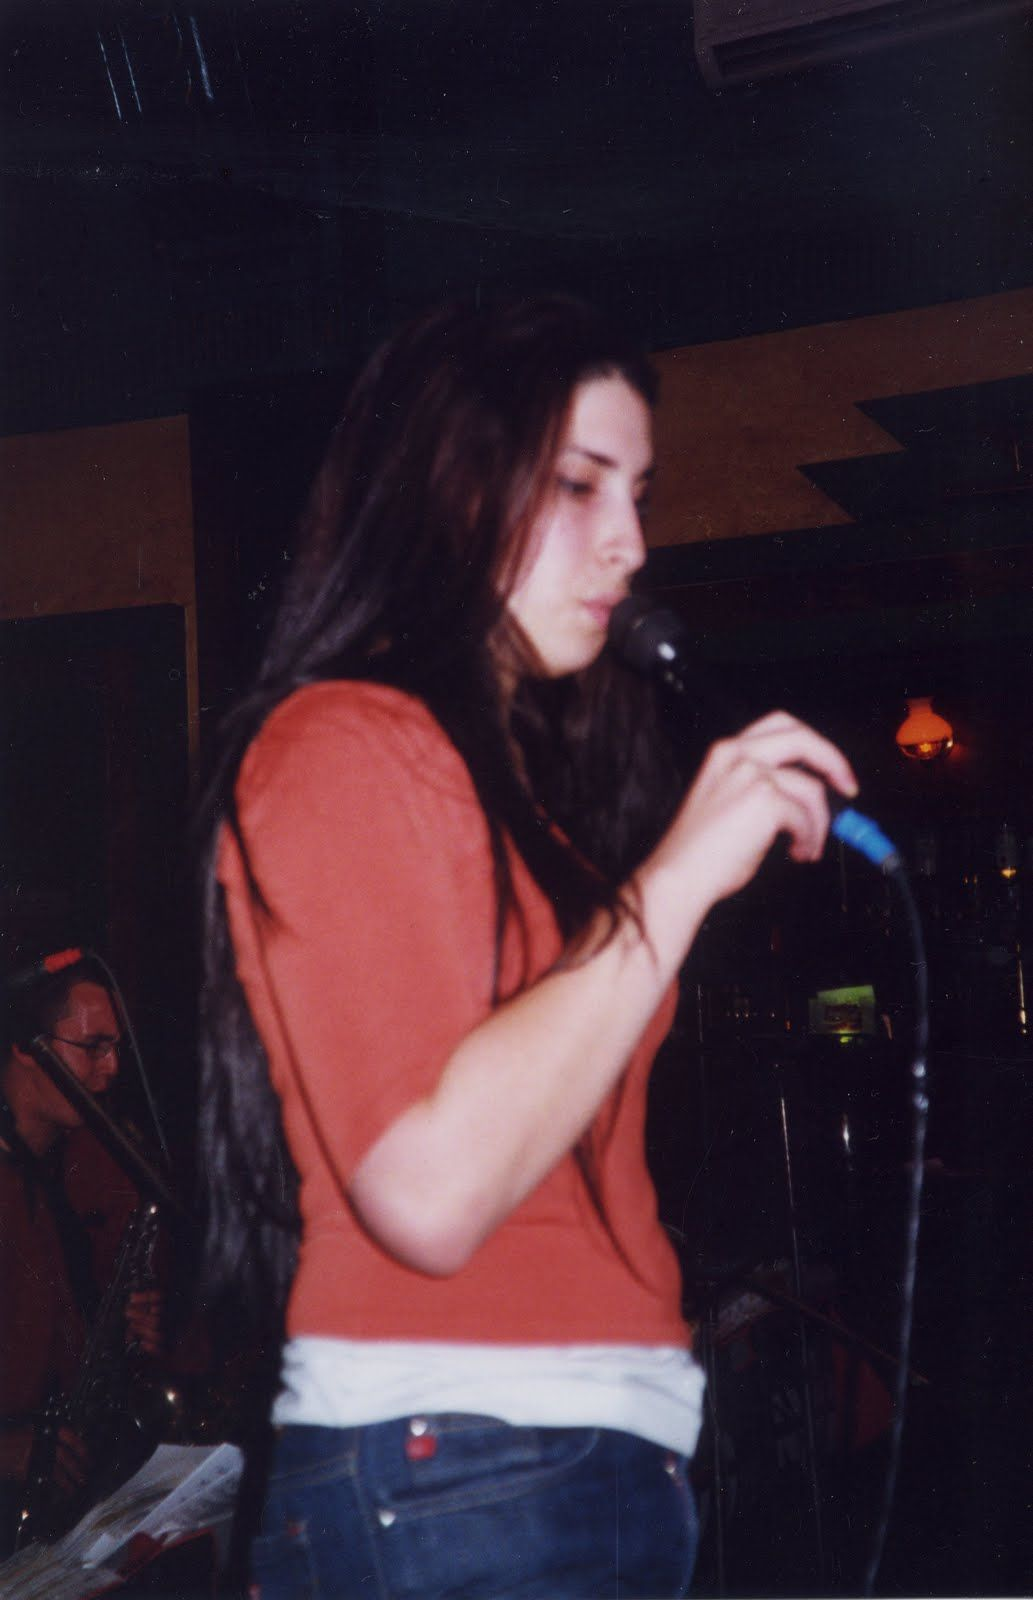 LondonJazz: Amy Winehouse and NYJO - photos and a tribute